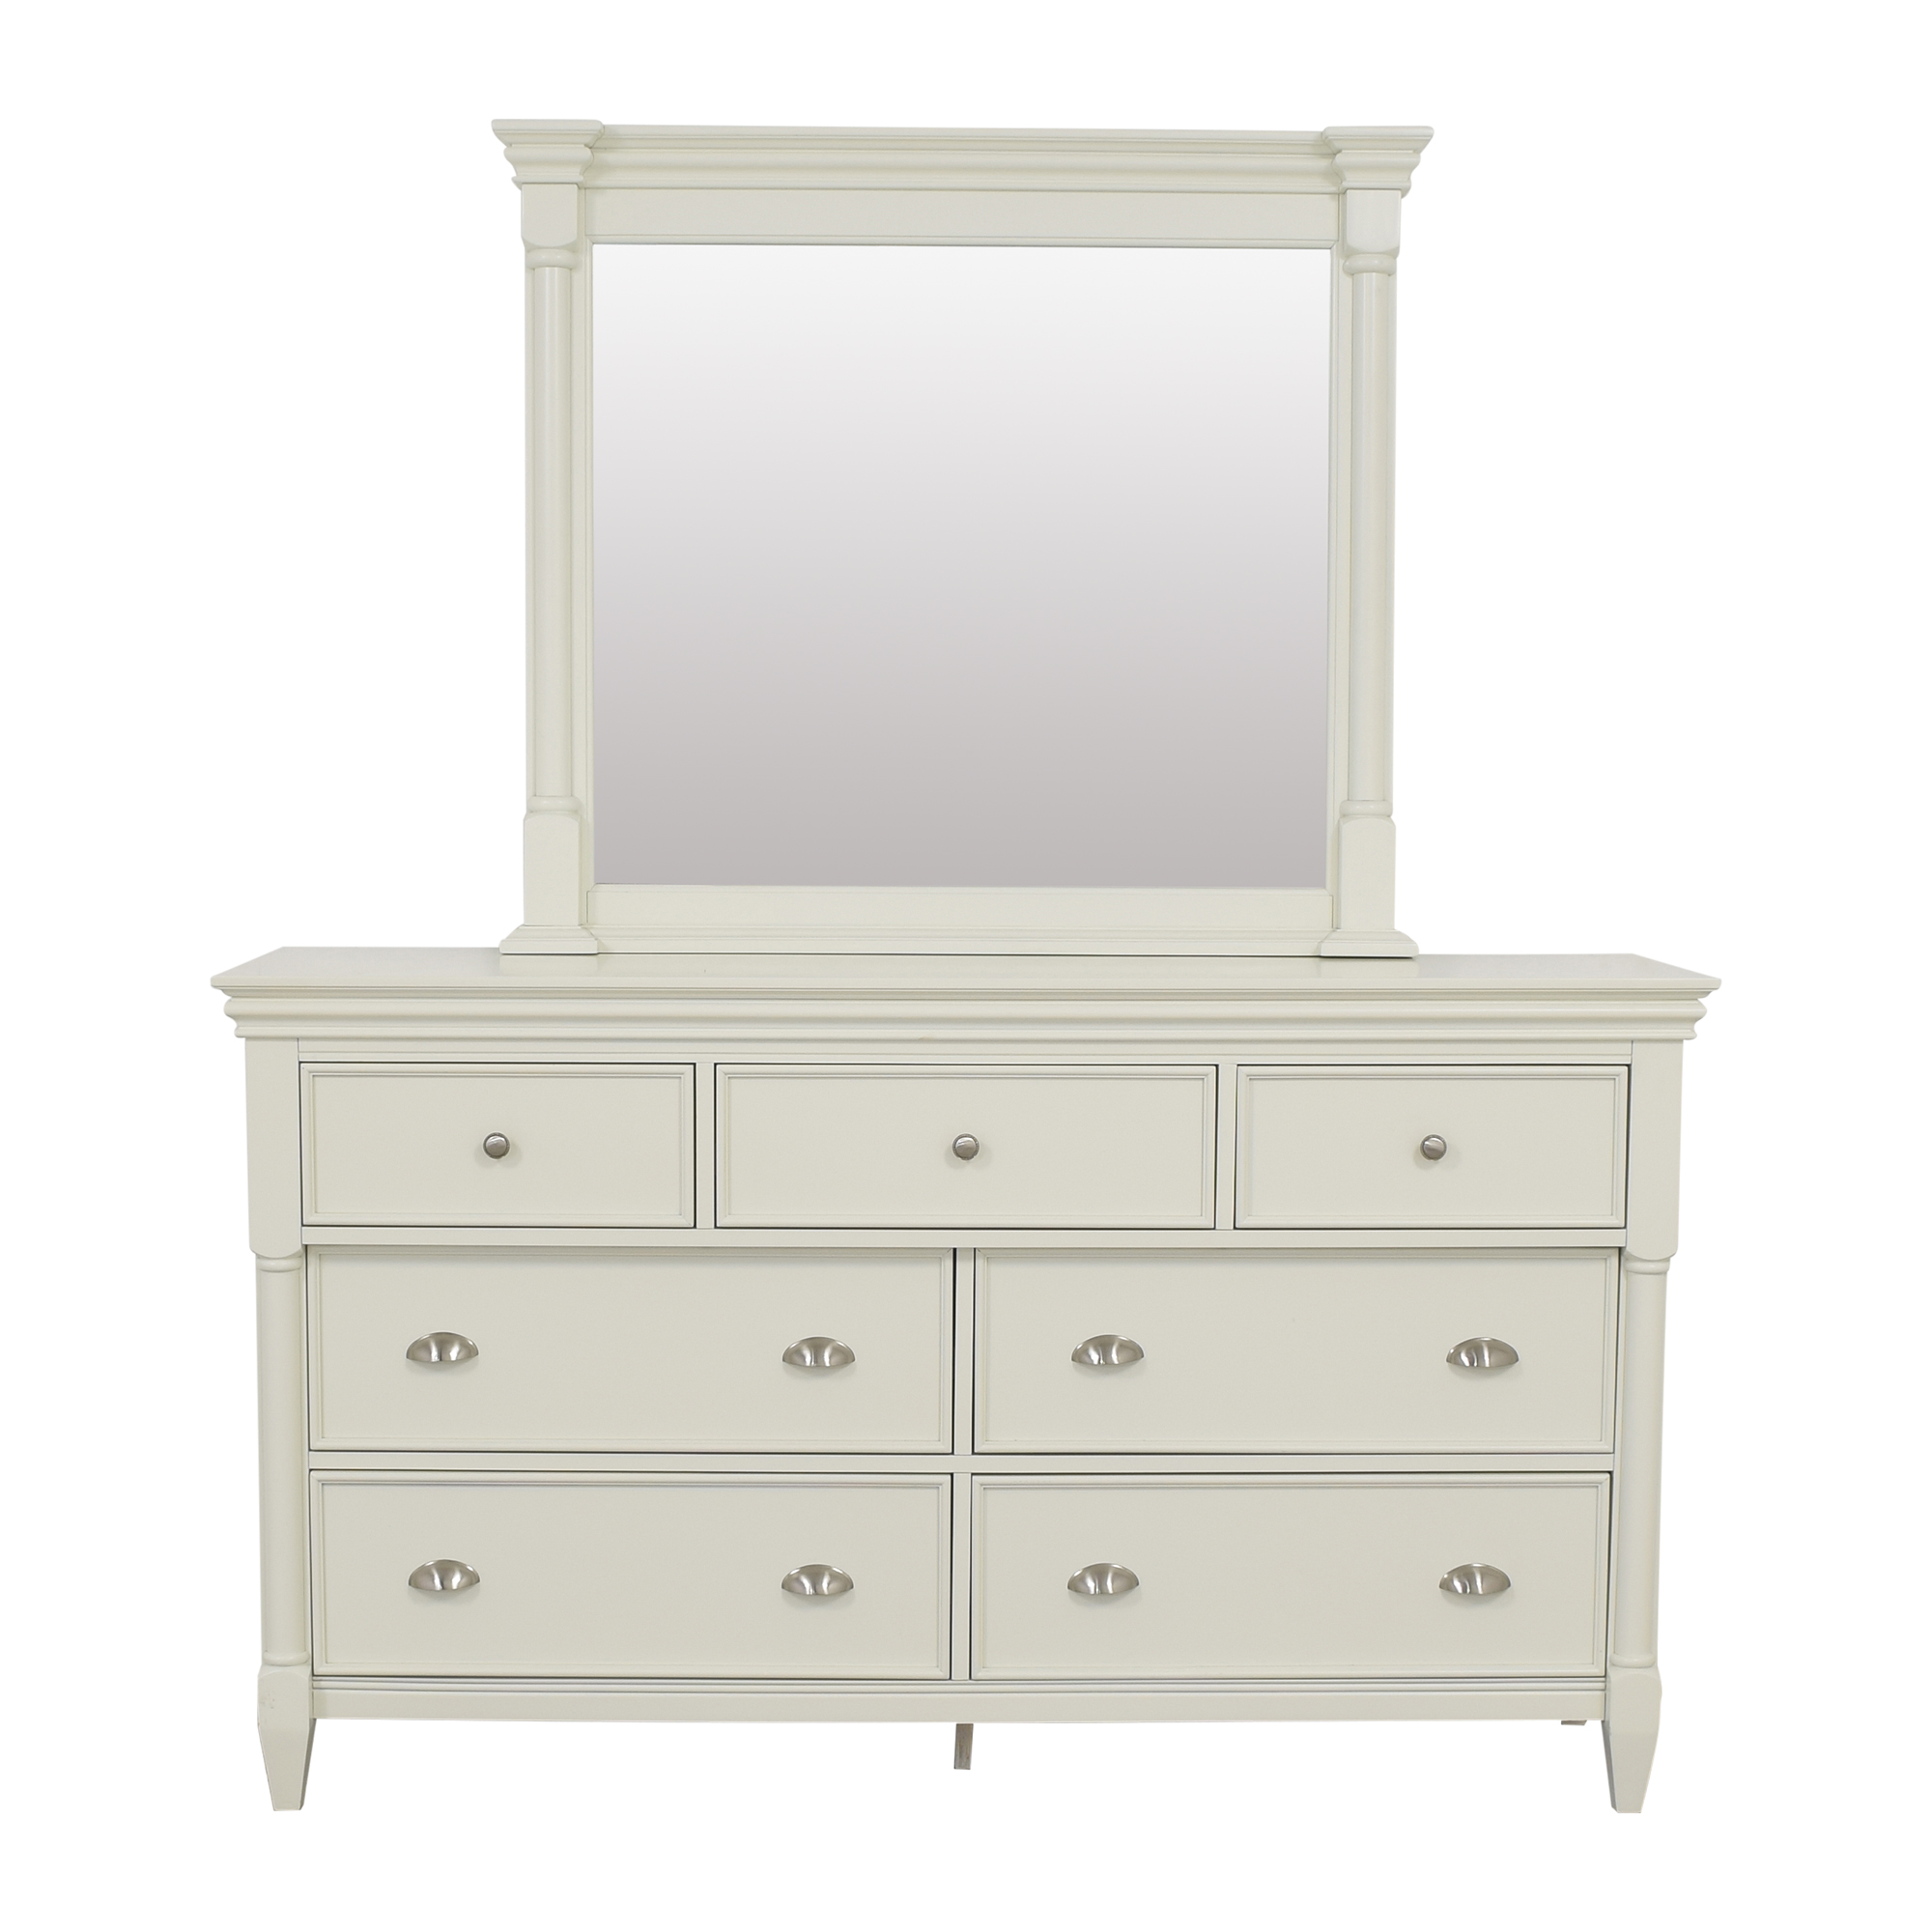 Raymour & Flanigan Raymour & Flanigan Retreat Bedroom Dresser with Mirror for sale